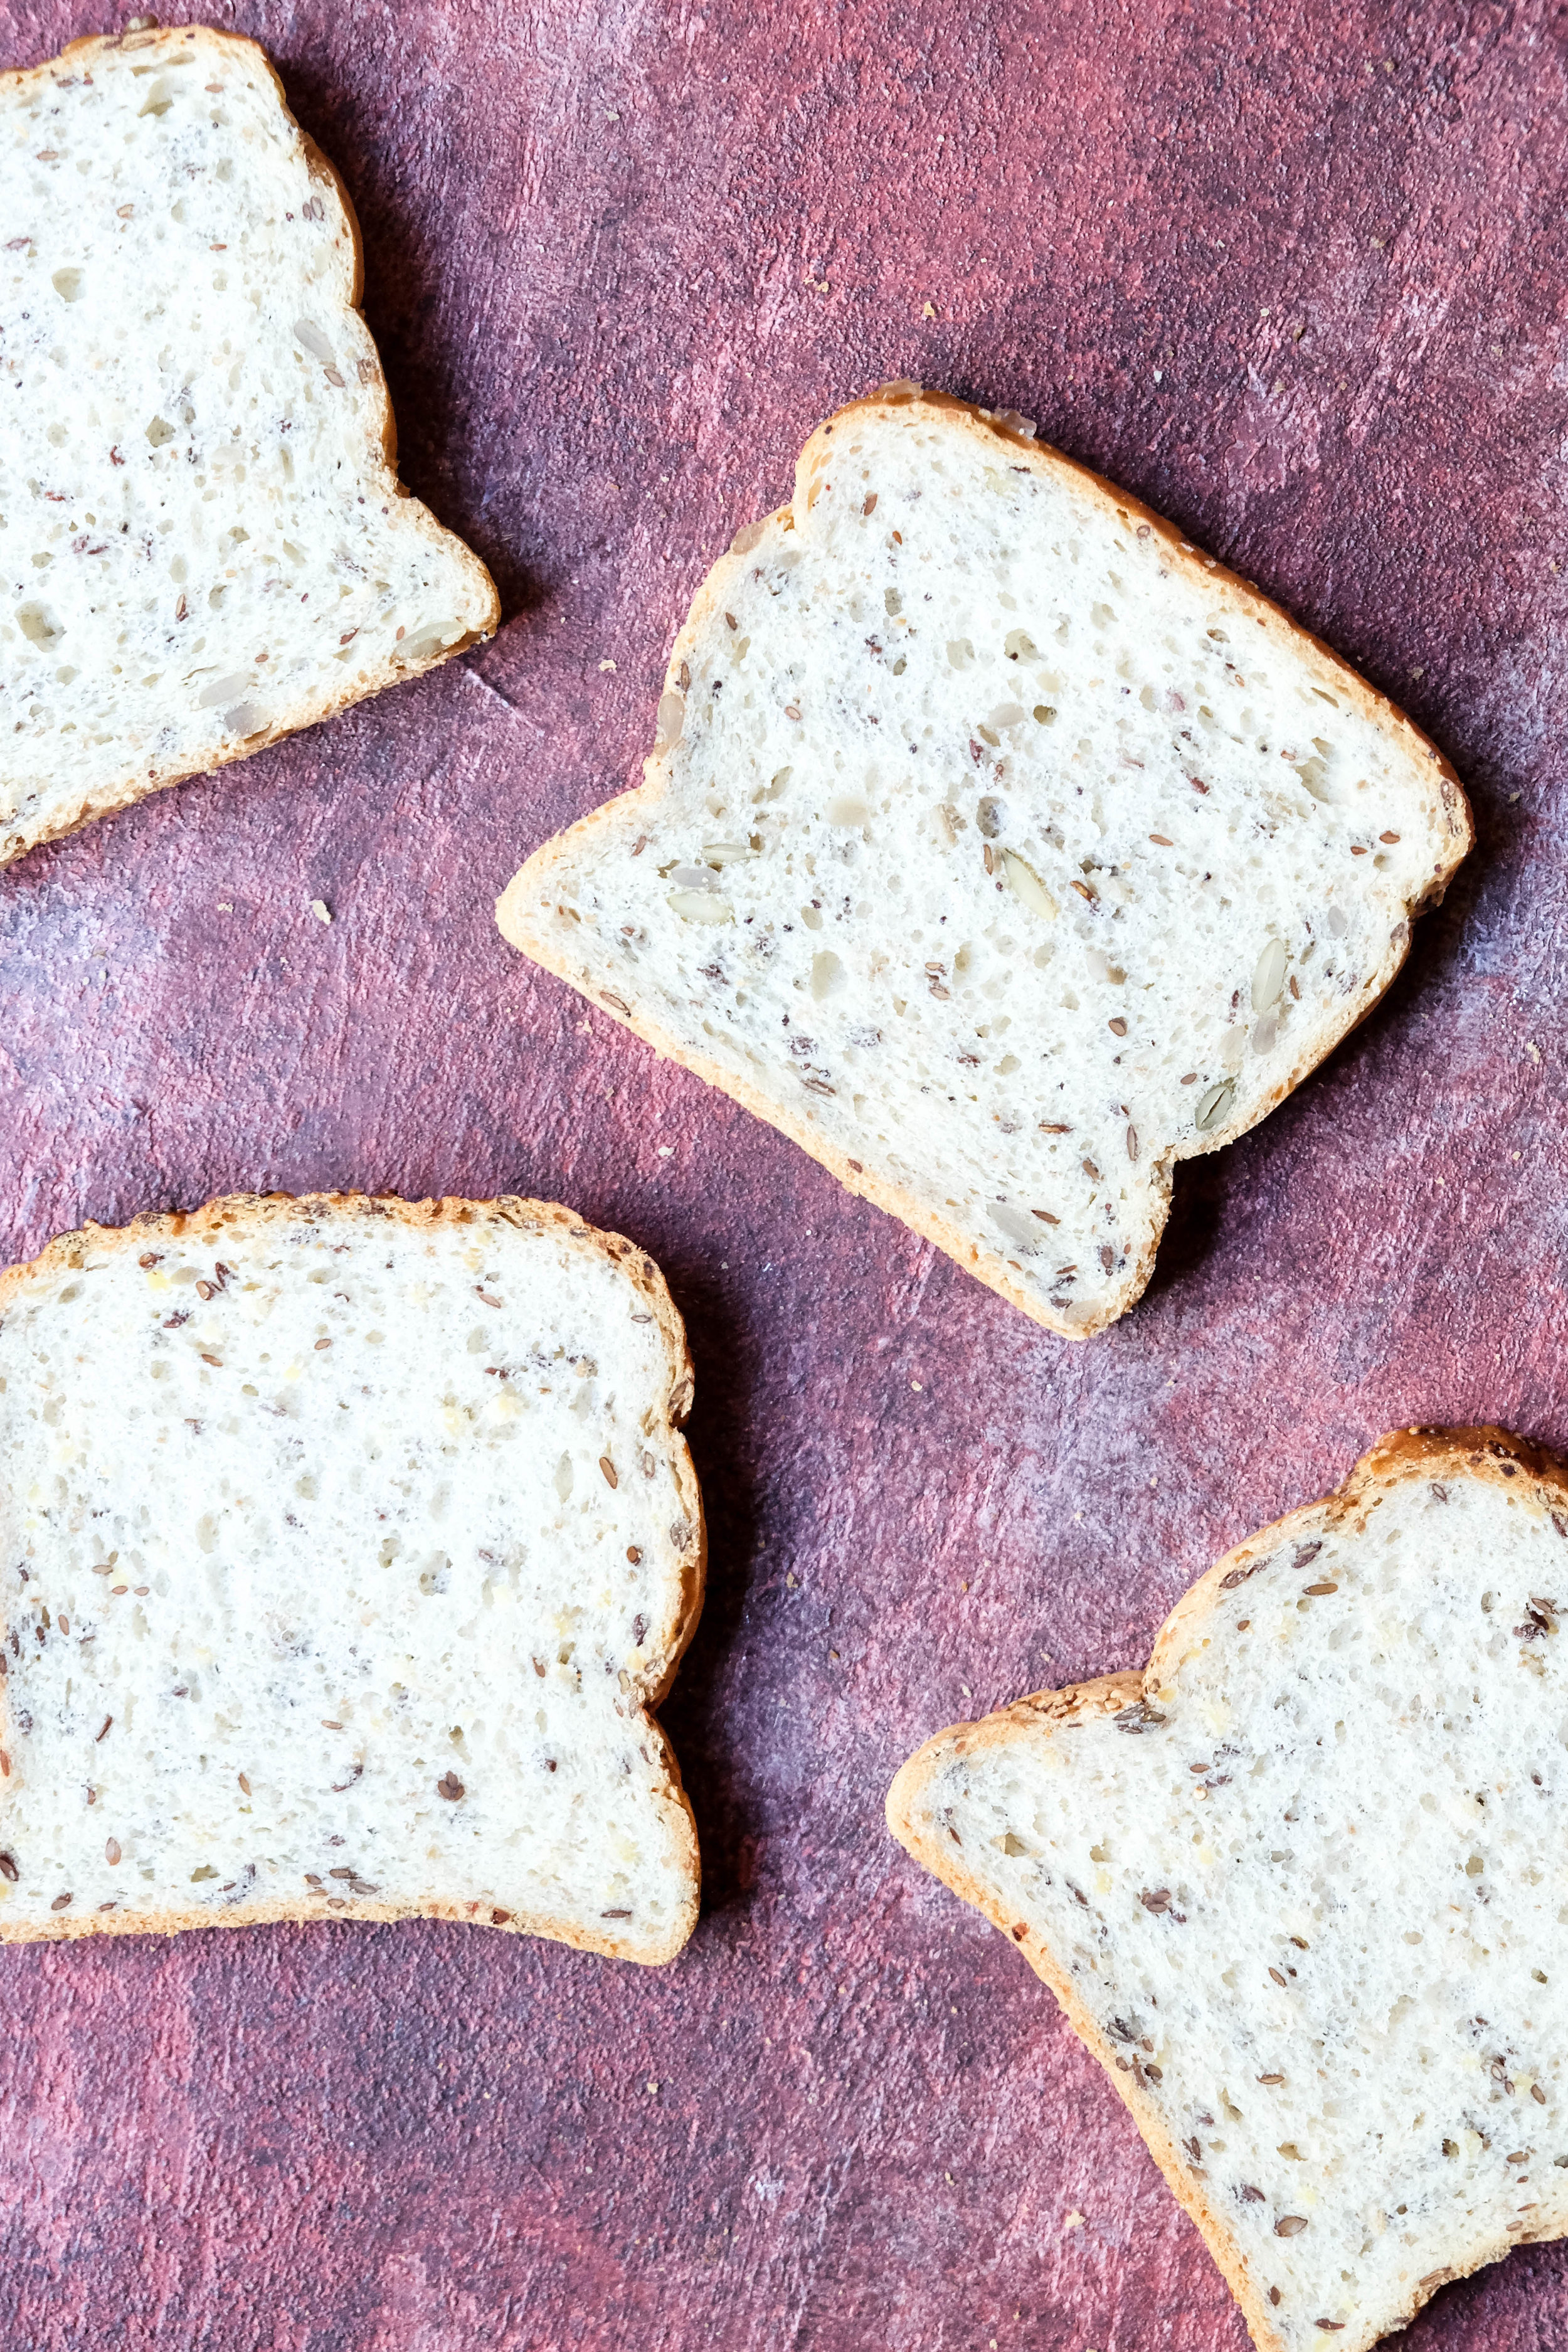 Gluten free bread - so soft!